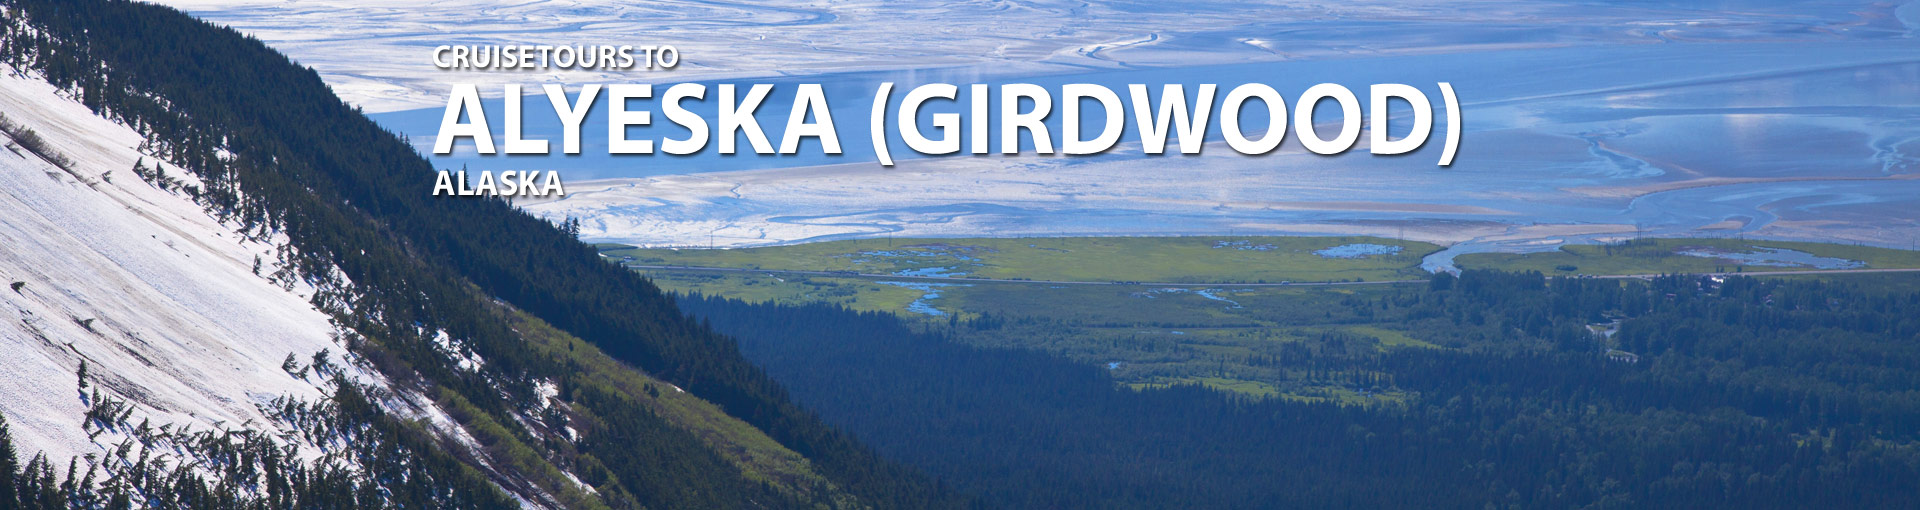 Cruisetours to Alyeska (Girdwood), Alaska